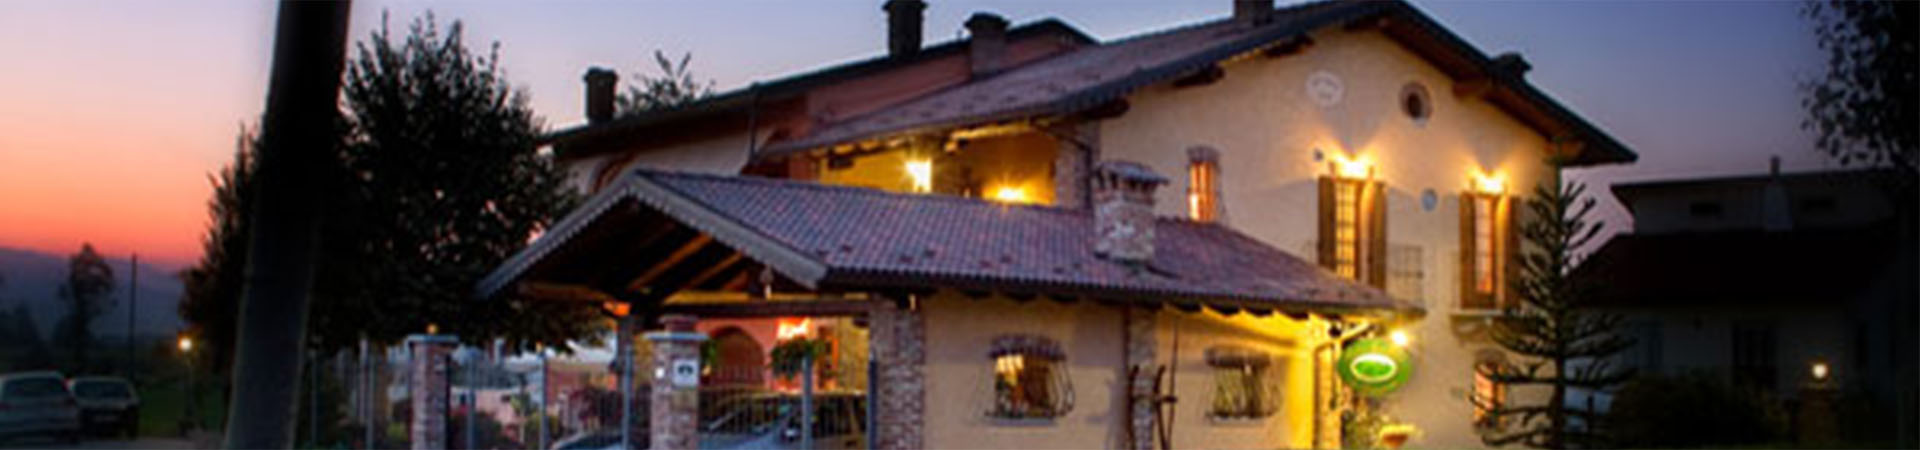 Bisimauda, facciata, Boves- bed and breakfast